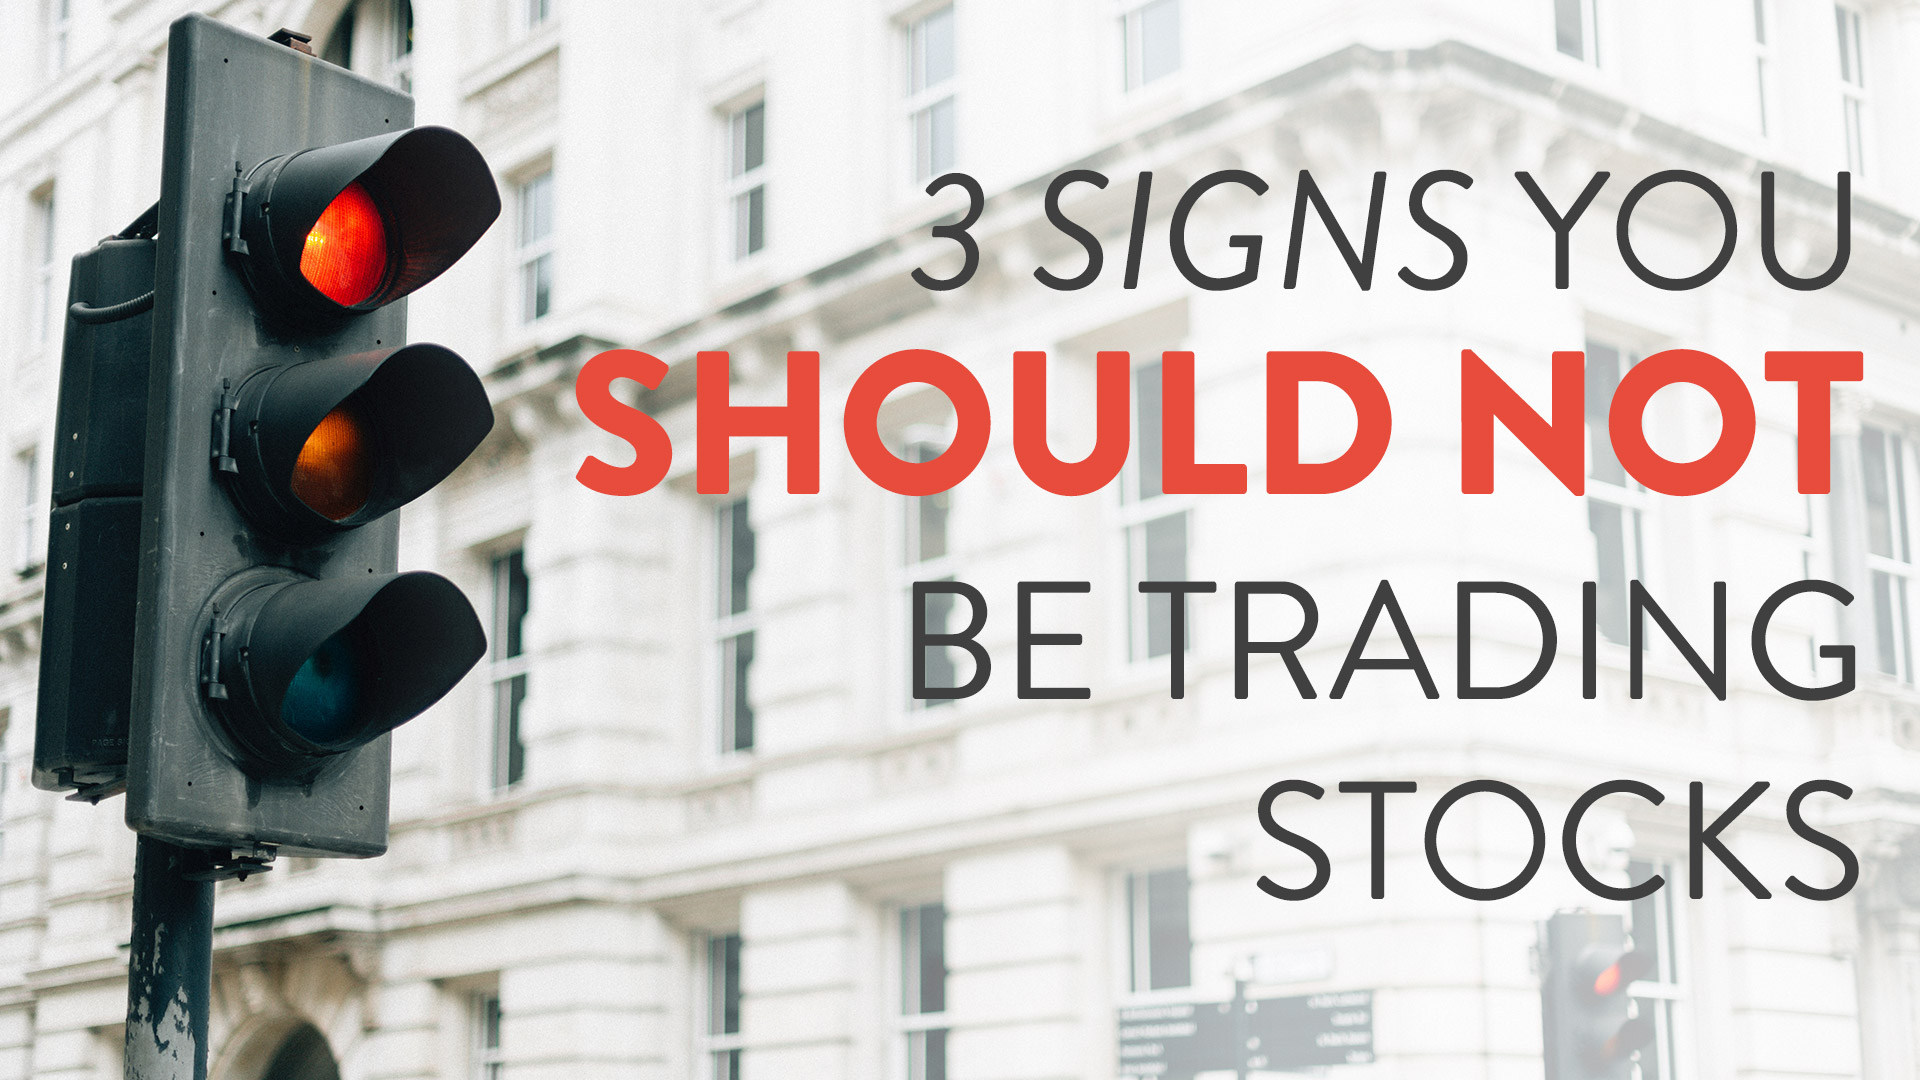 3 Signs You Should NOT Be Trading Stocks